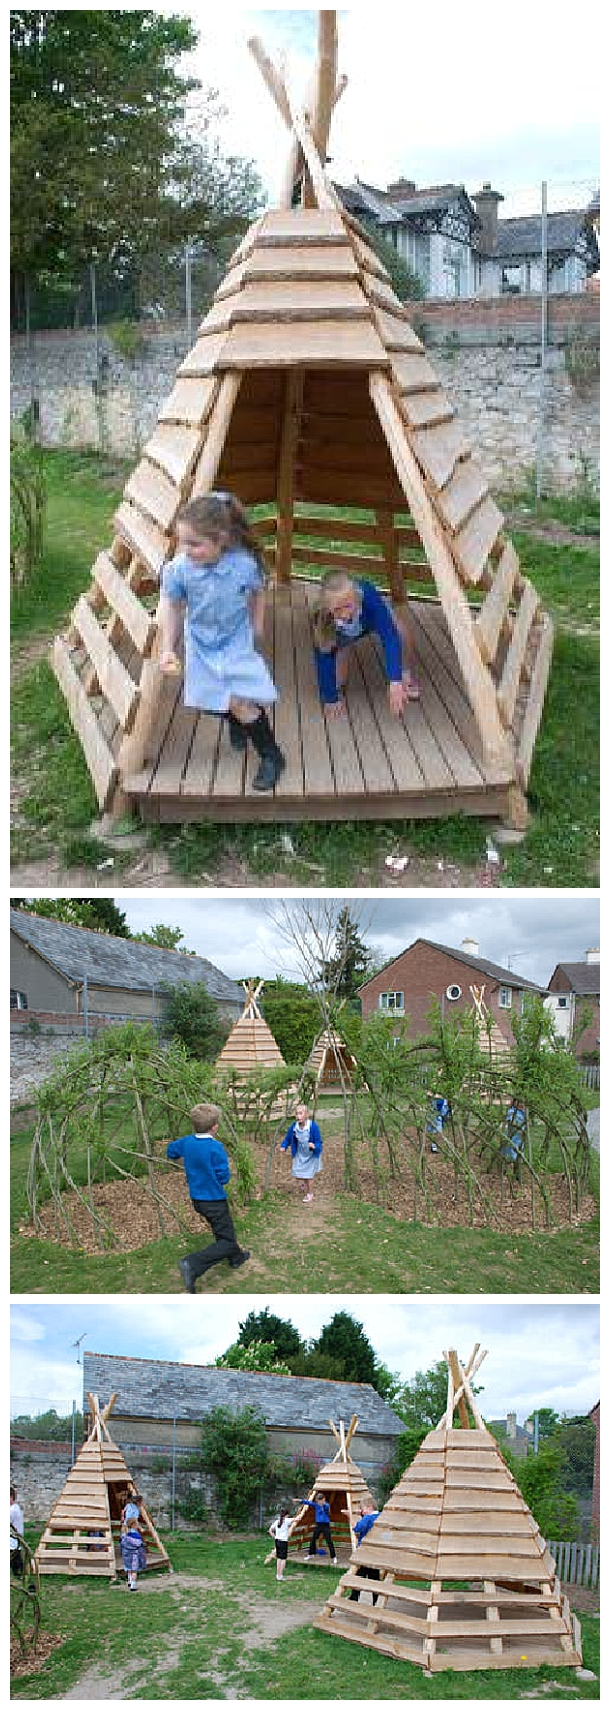 Pallet Projects - DIY Outdoor TeePee for a Kids Playground or the Backyard - Do it Yourself Outdoor Woodworking Tutorial via 1001 Pallets #easypalletprojects #beginnerwoodworking #easywoodworkingtutorials #woodworkingtutorials #DIYprojects #easyDIYprojects #diyhomedecor #diyfurniture